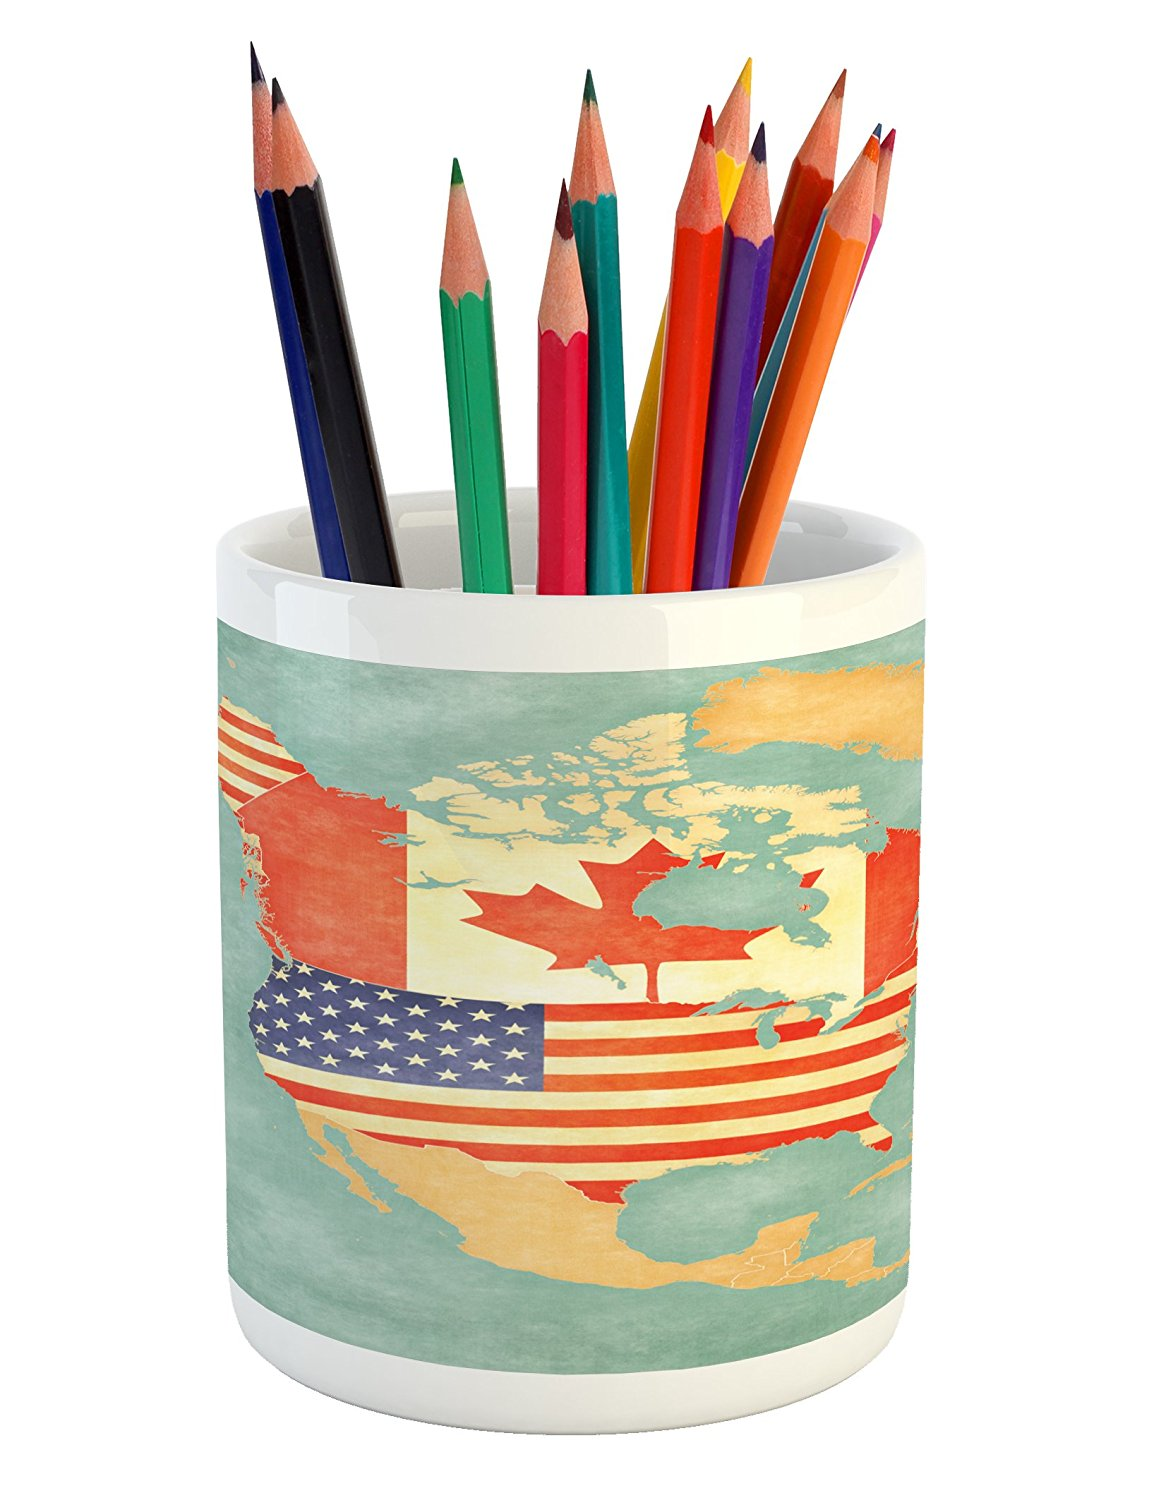 World Map Pencil Pen Holder by Lunarable, States and Canada Outline Map of the North America in Grunge Stylized Soft Colors, Printed Ceramic Pencil Pen Holder for Desk Office Accessory, Multicolor